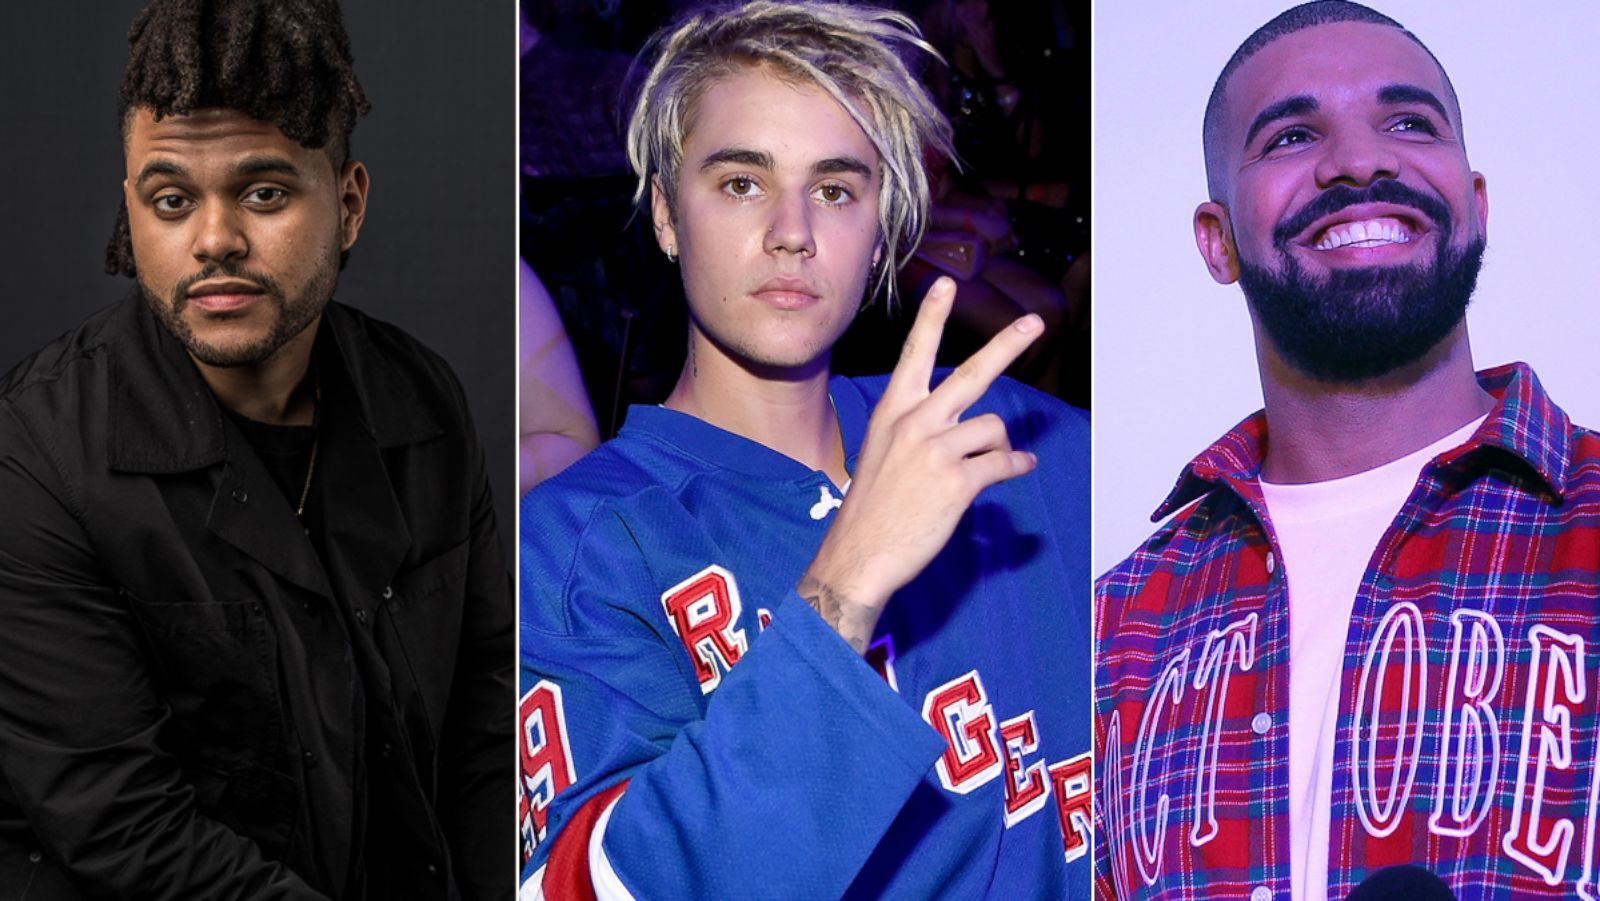 Billboard Music Awards 2016: The Weeknd, Justin Bieber and Drake Among Top  Finalists - ABC News